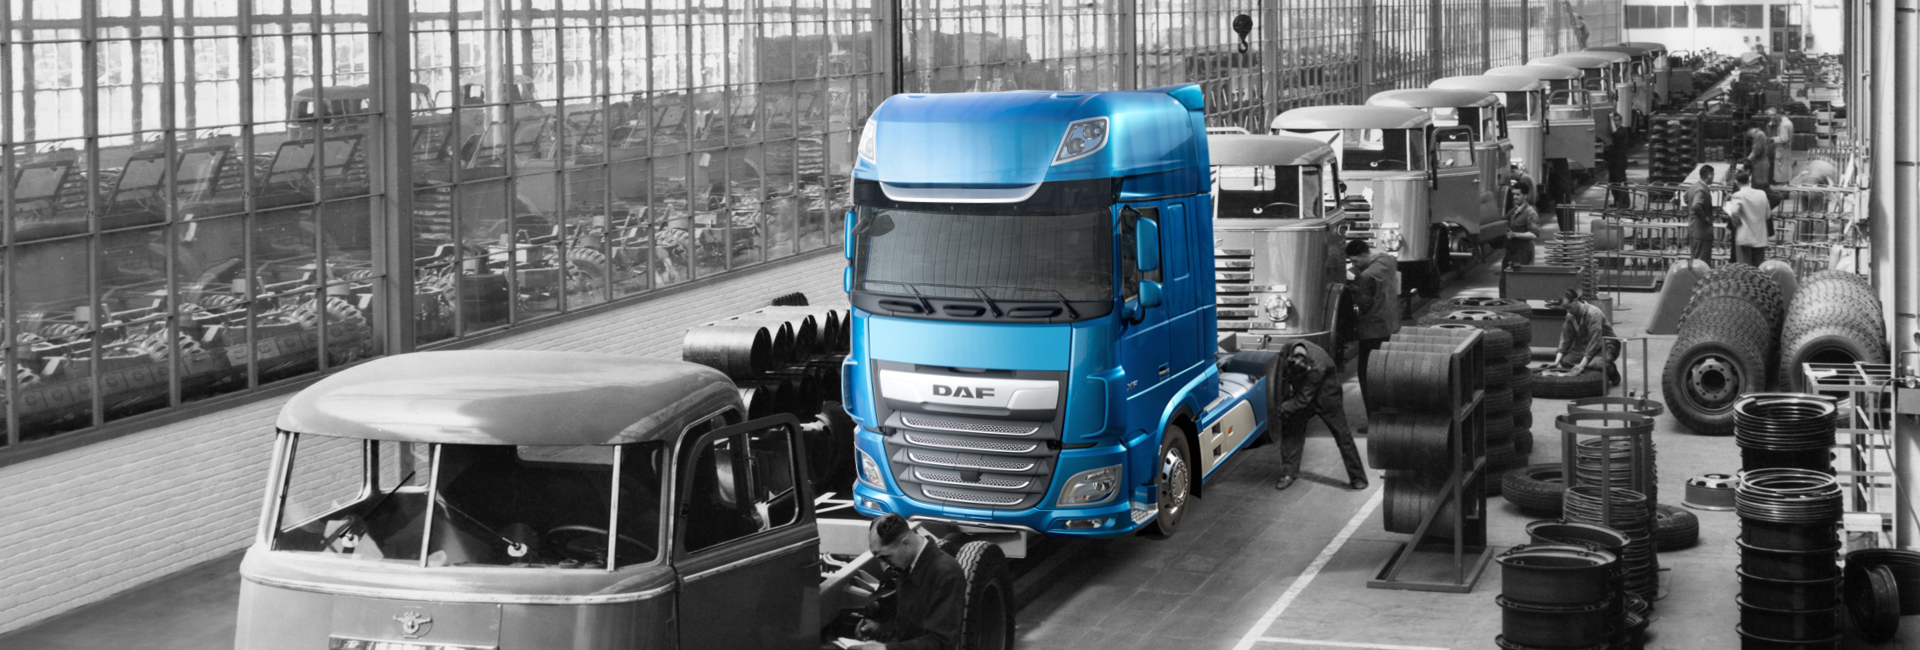 DAF new truck in 1952 factory